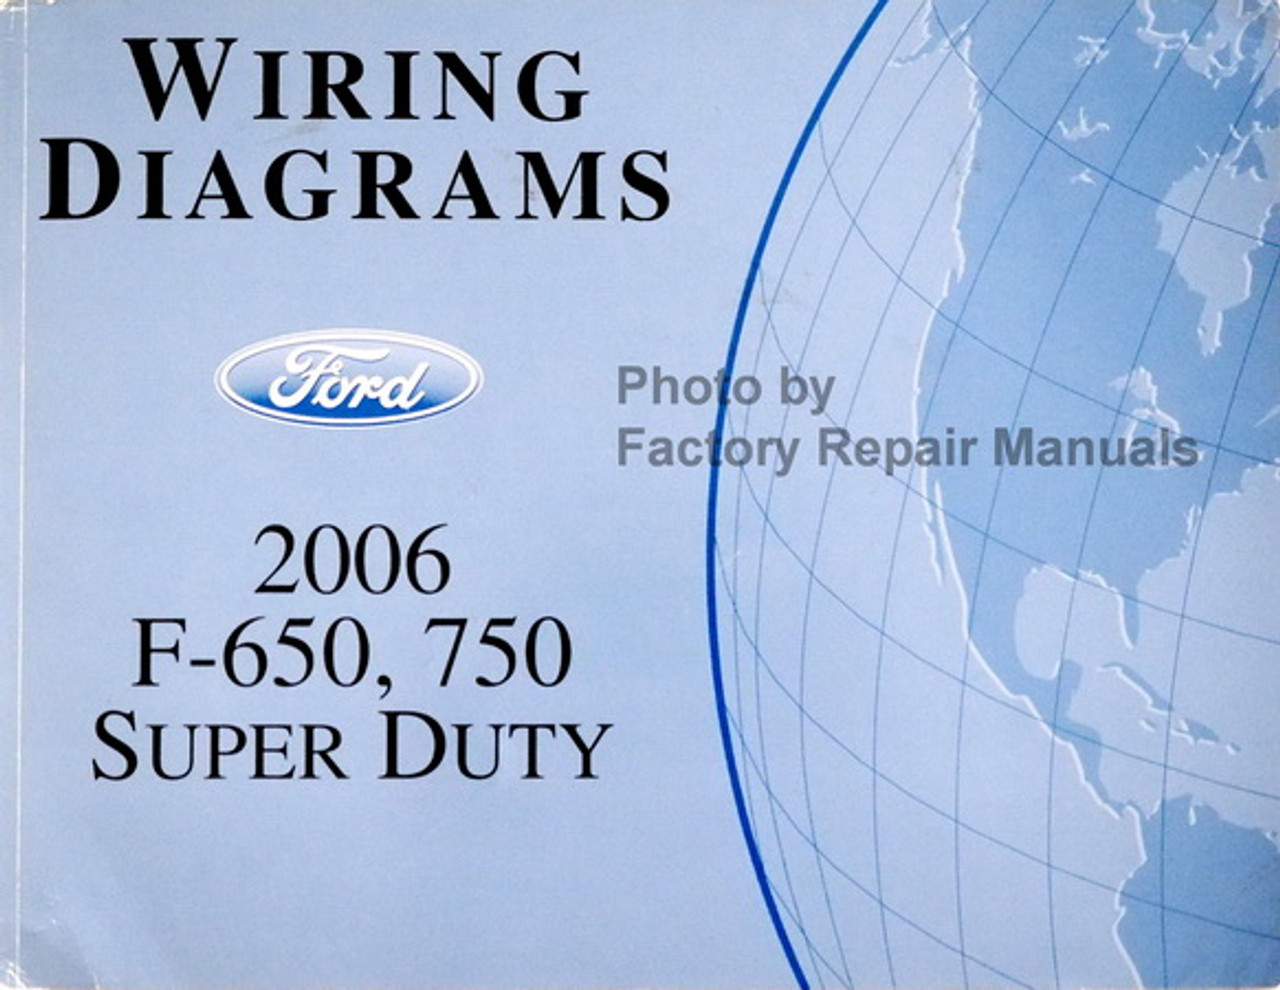 [SCHEMATICS_4HG]  2006 Ford F650 F750 Medium Duty Truck Electrical Wiring Diagrams - Factory  Repair Manuals | Ford Medium Duty Truck Wiring Diagrams |  | Factory Repair Manuals